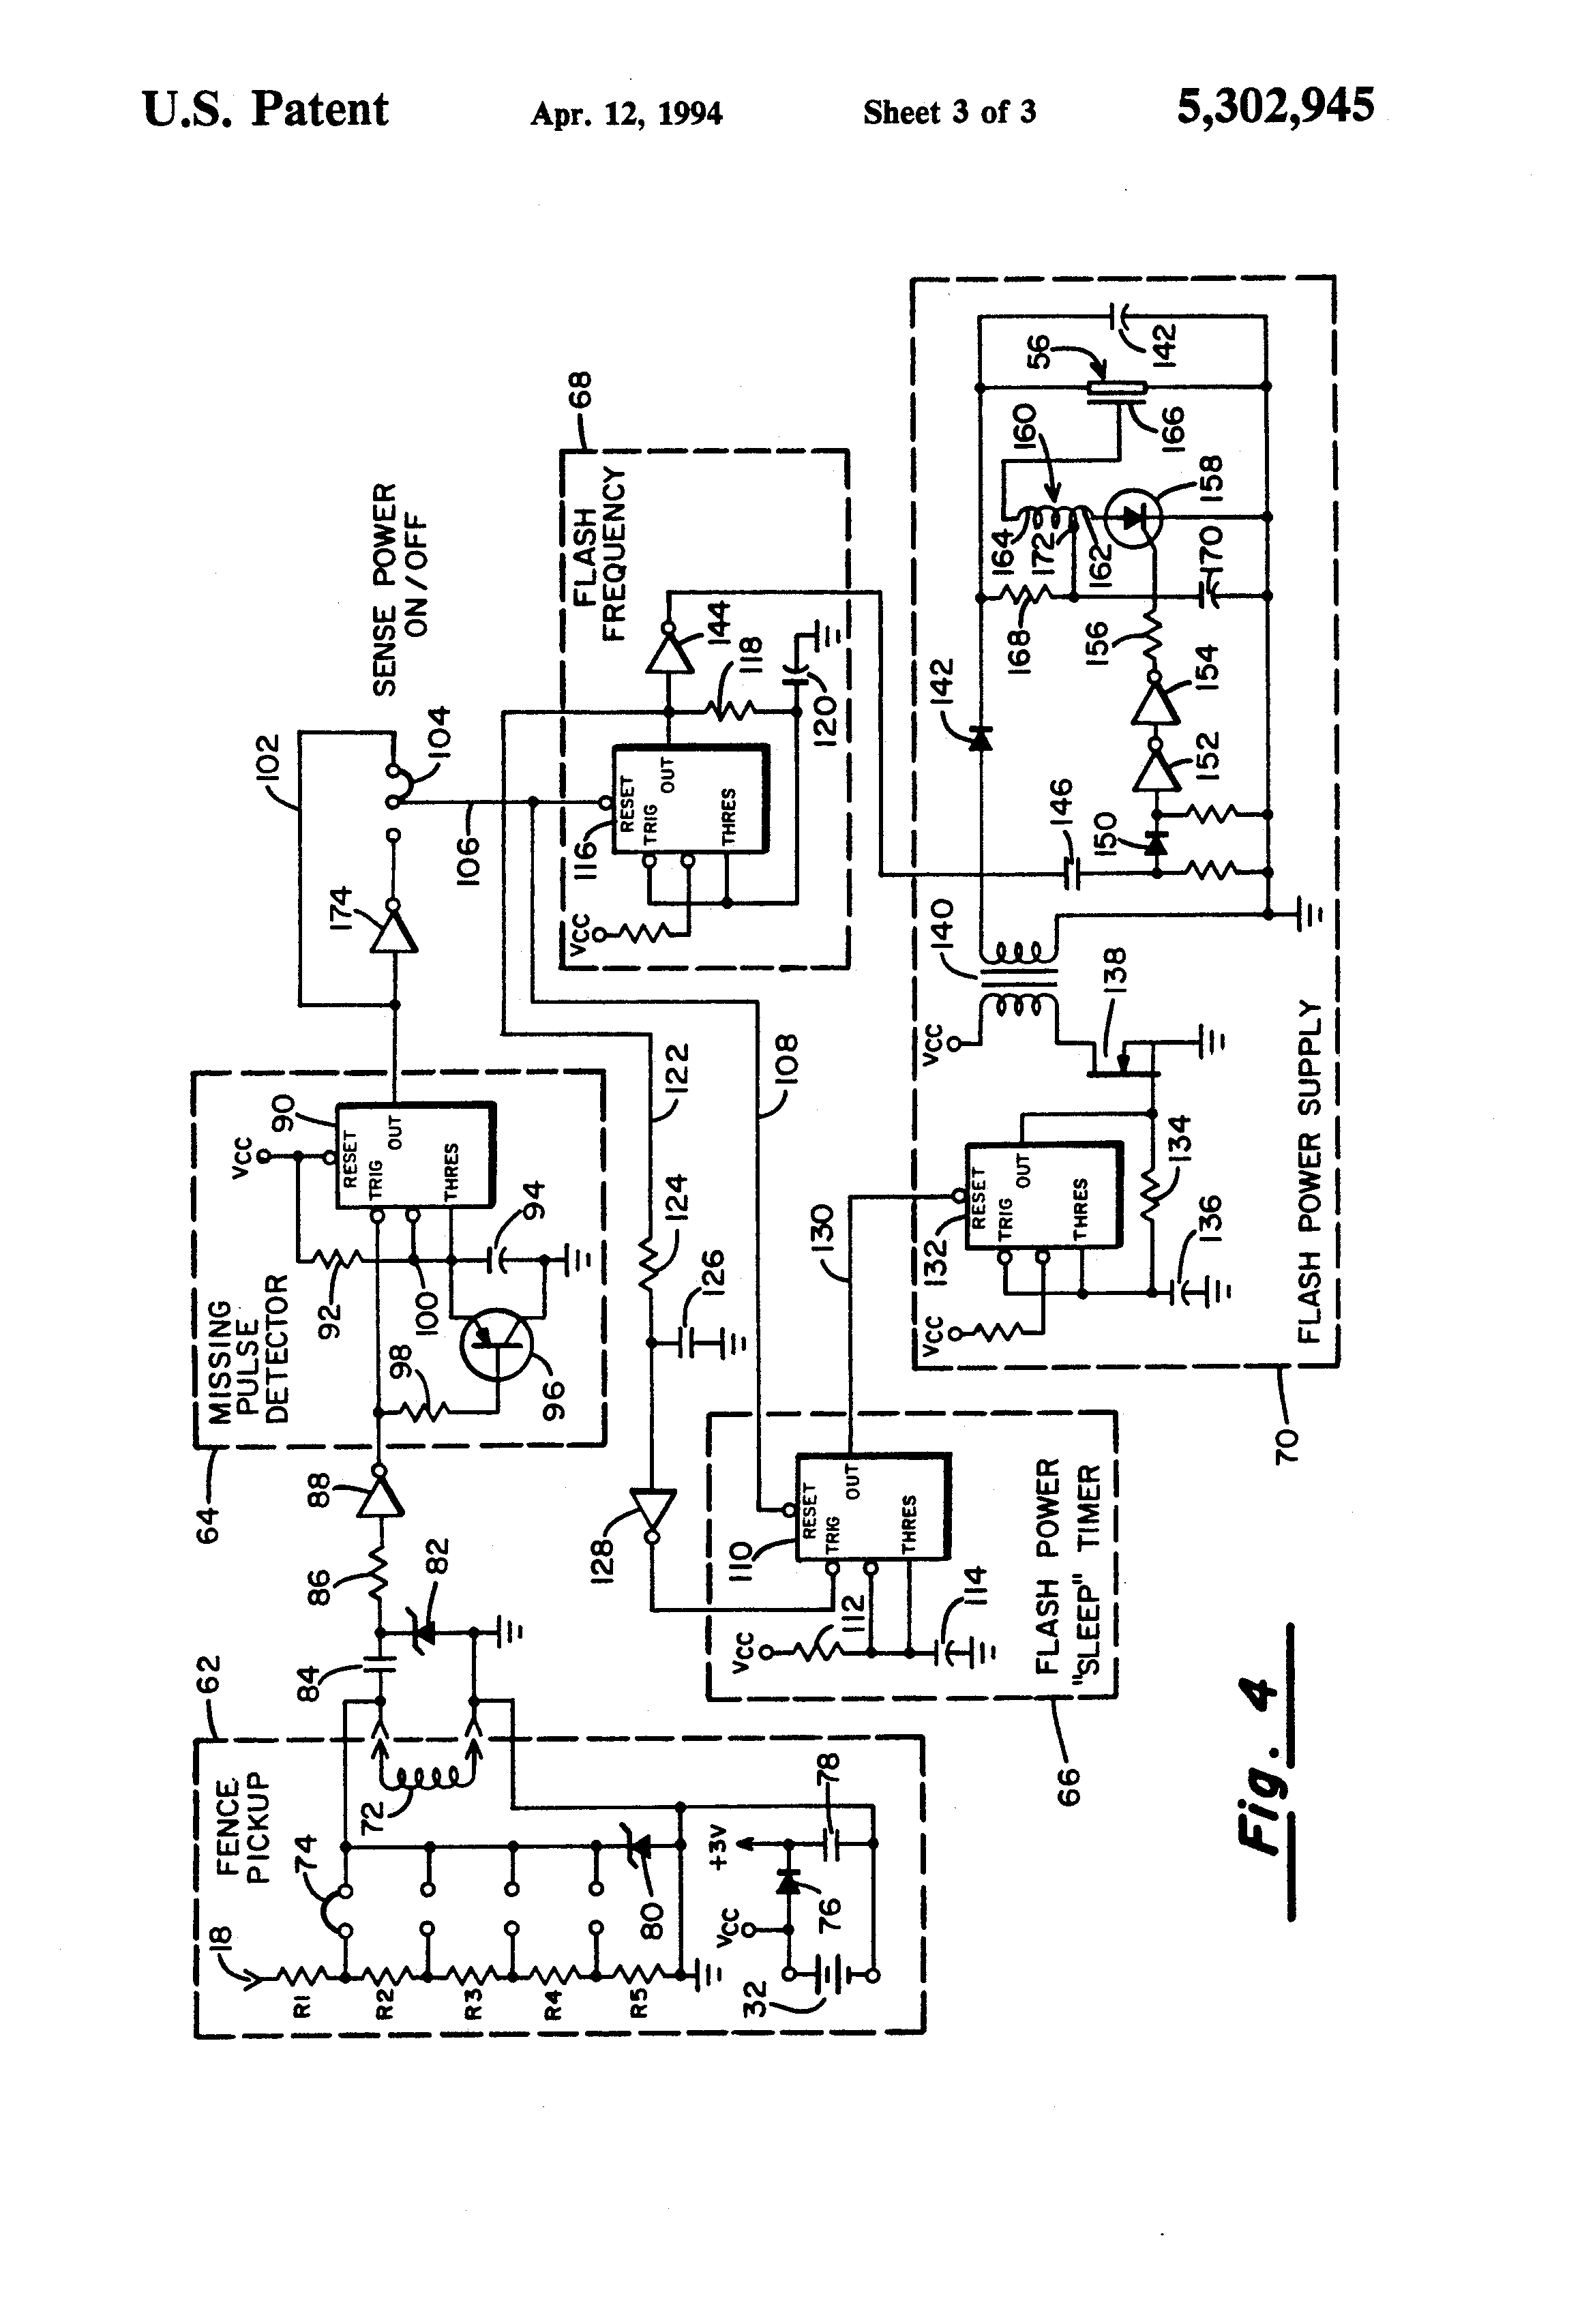 patent us5302945 - electric appliance fault monitor and indicator